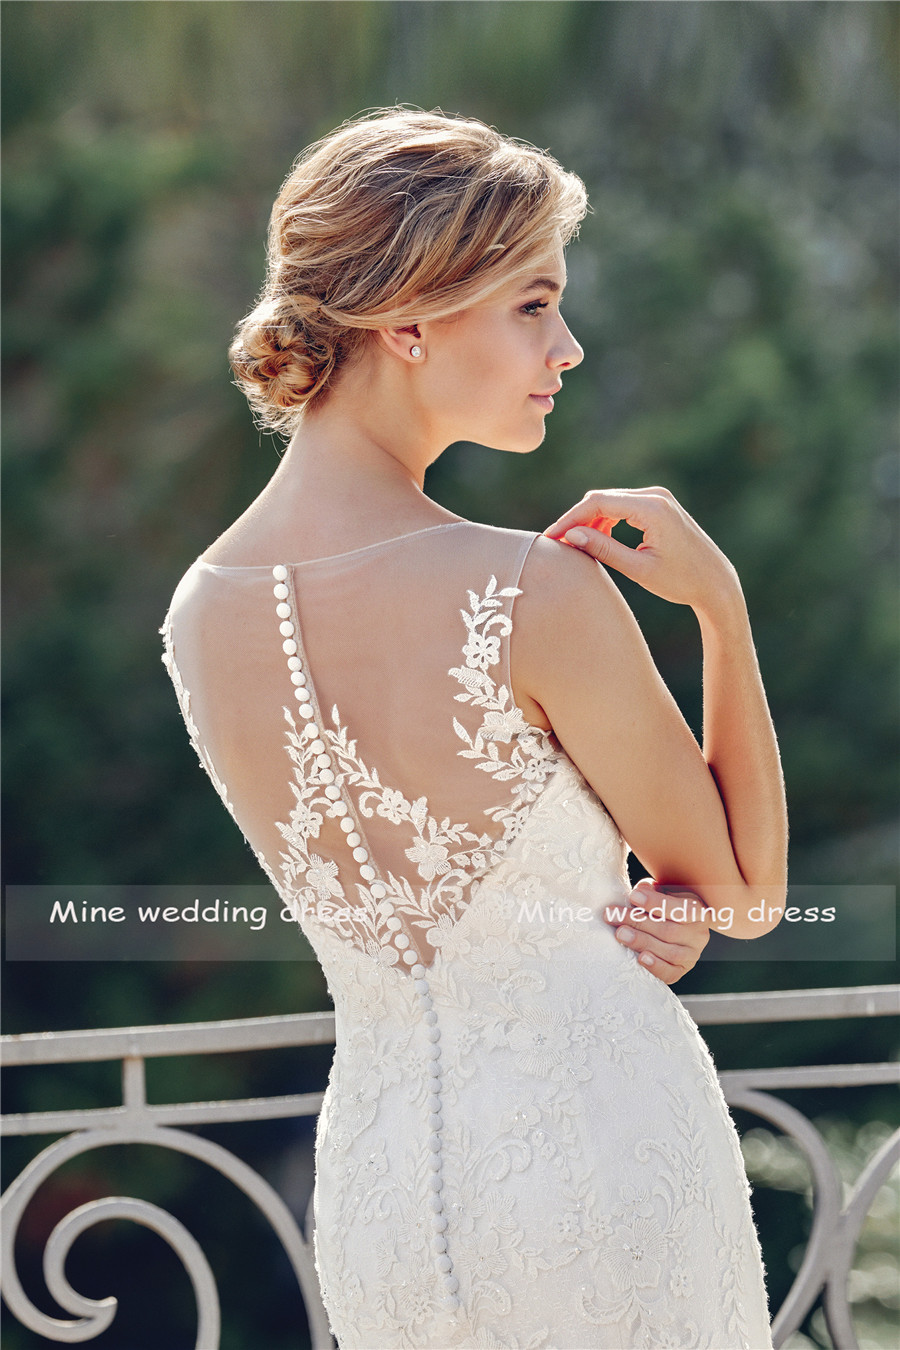 Allover Lace Applique Dee V neck Mermaid Wedding Gown with Illusion Neckline and Back Sexy Bridal Dress vestidos de noiva-in Wedding Dresses from Weddings & Events    2